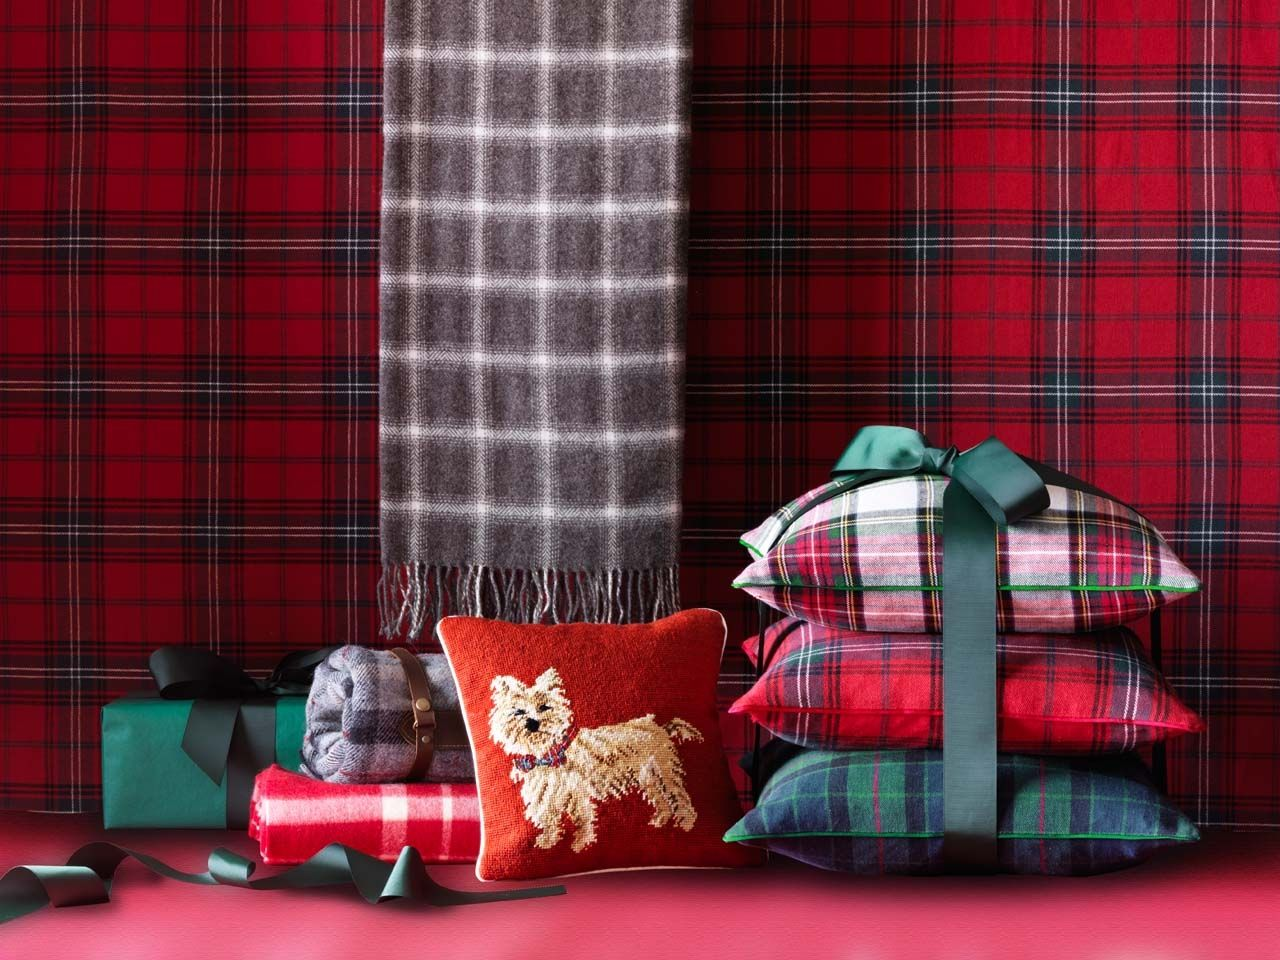 William Sonoma Chair Covers Expensive Gaming Wsh Tartan And Plaid Accessories Williamssonoma My